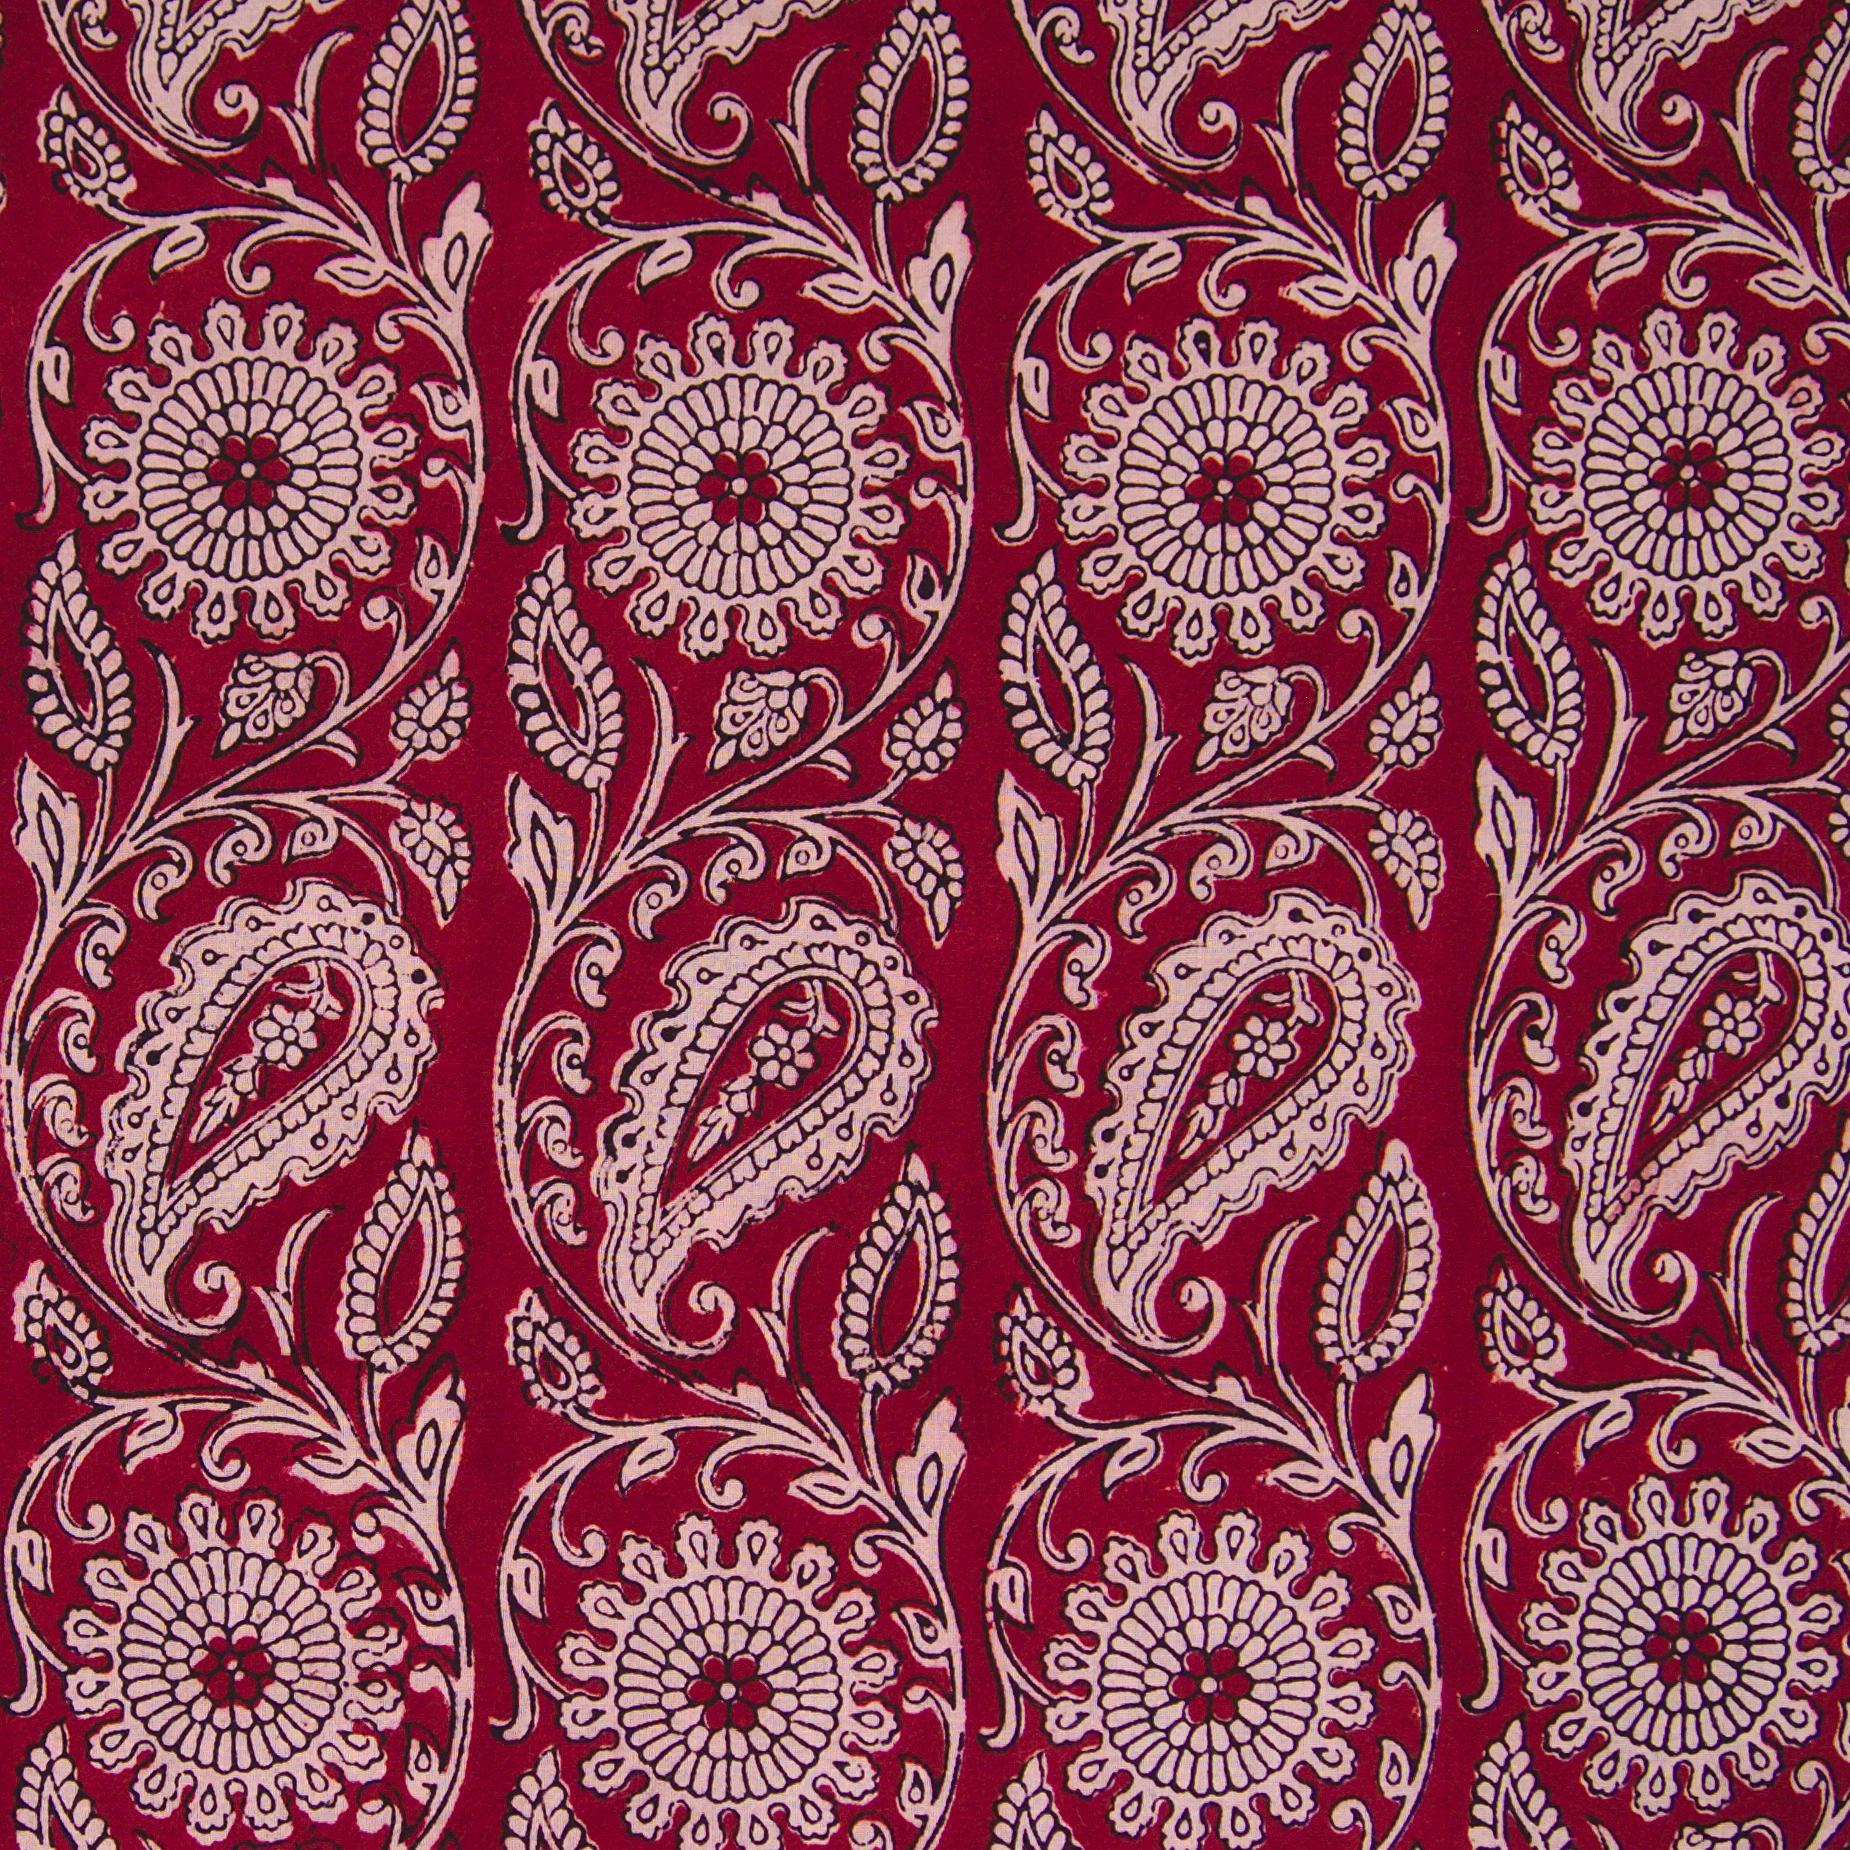 100% Block-Printed Cotton Fabric From India - Sichuan Pepper Design - Iron Rust Black & Alizarin Red Dyes - Flat - Live